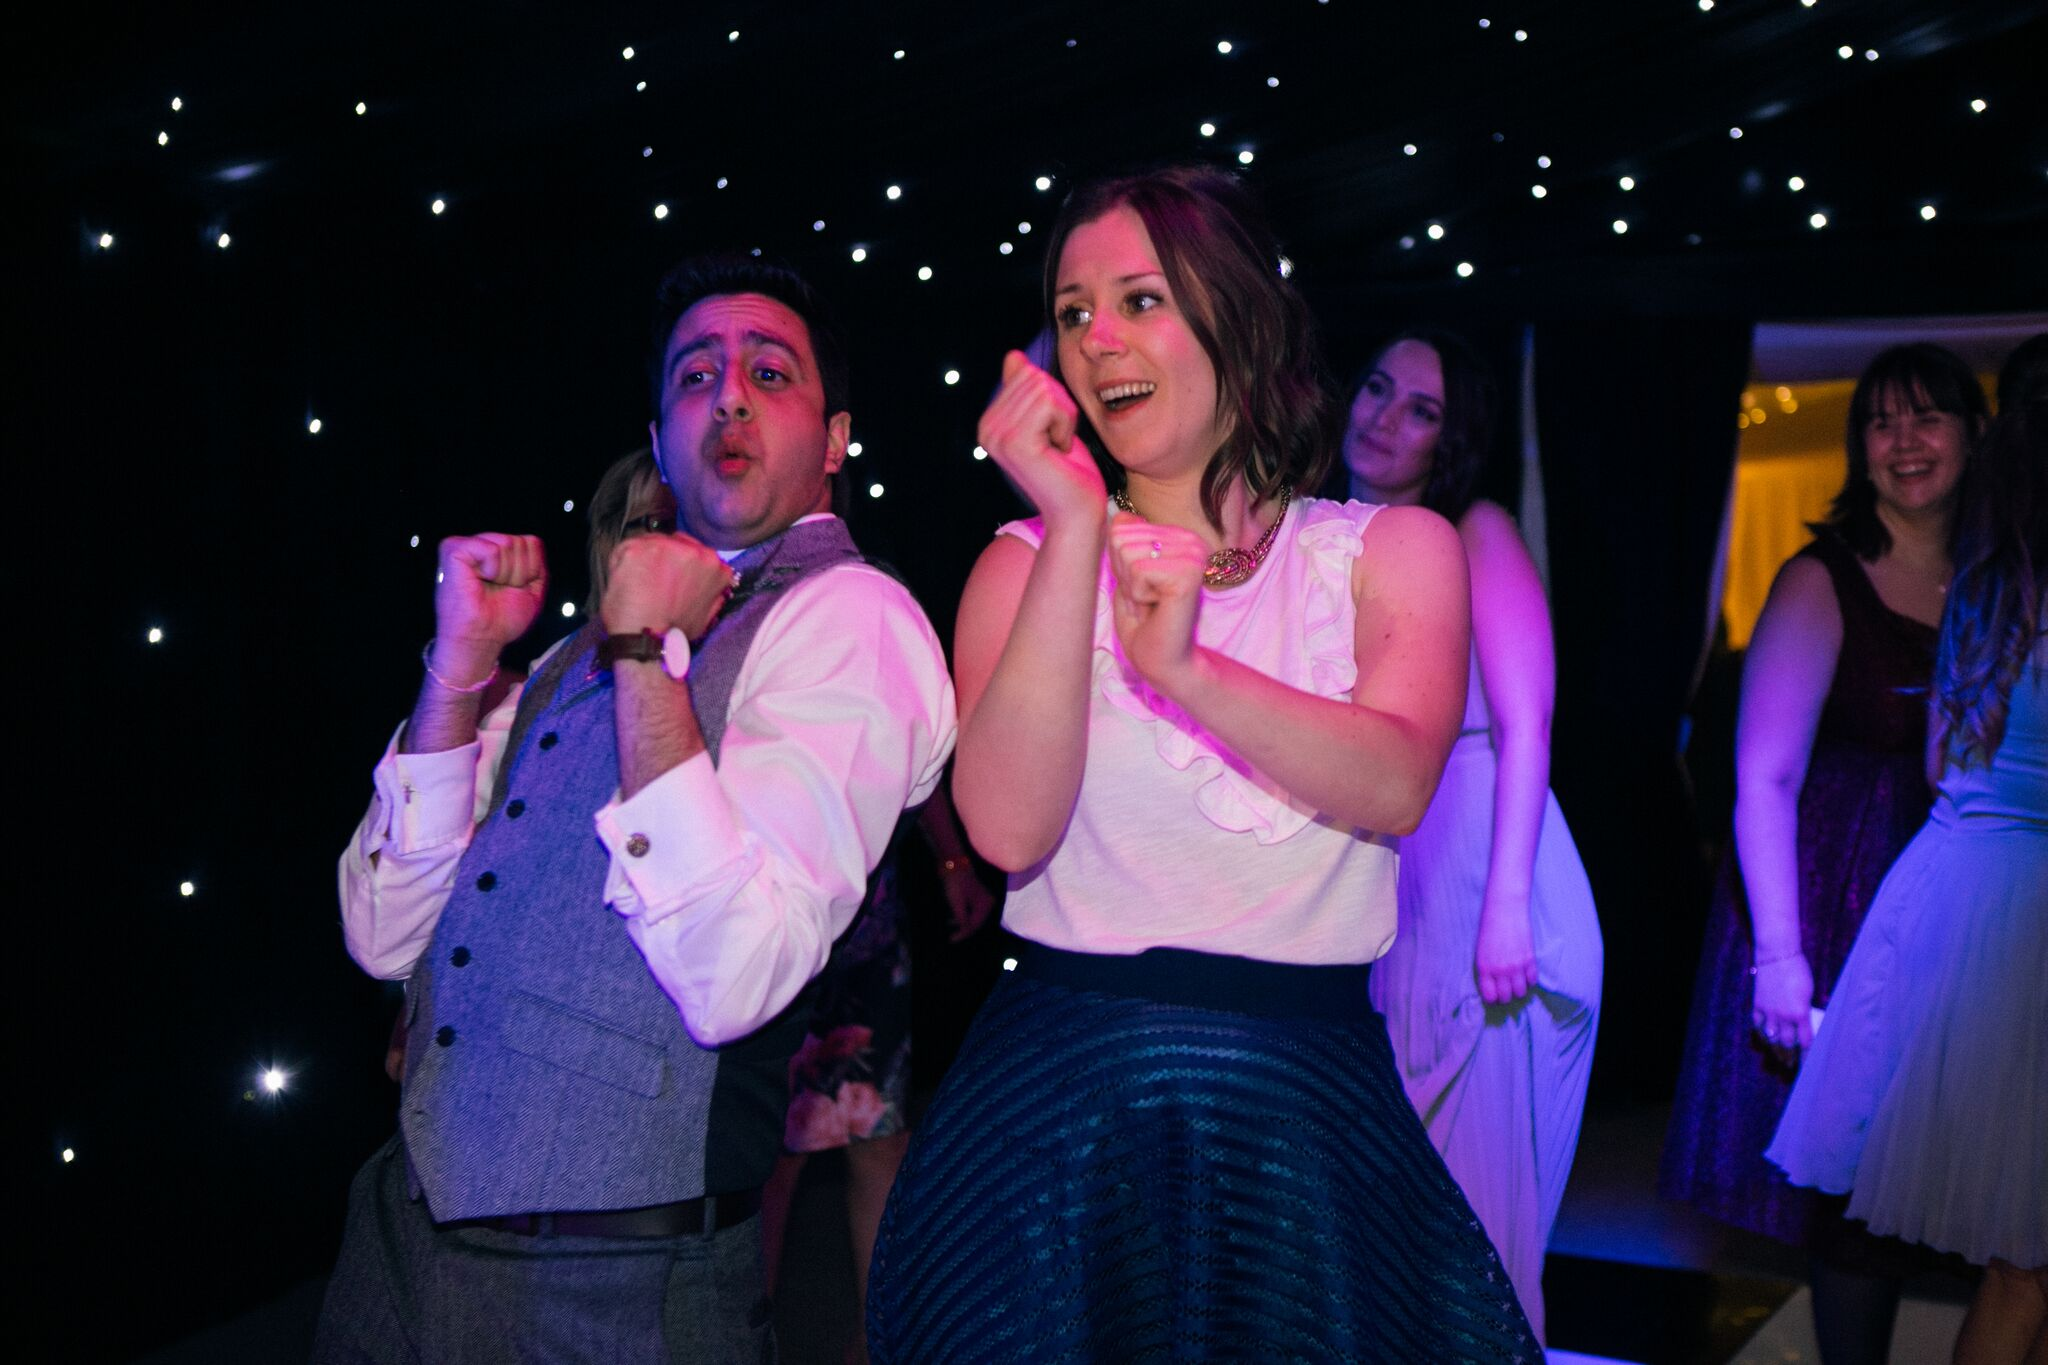 Guests partying on the dance floor with the DJ